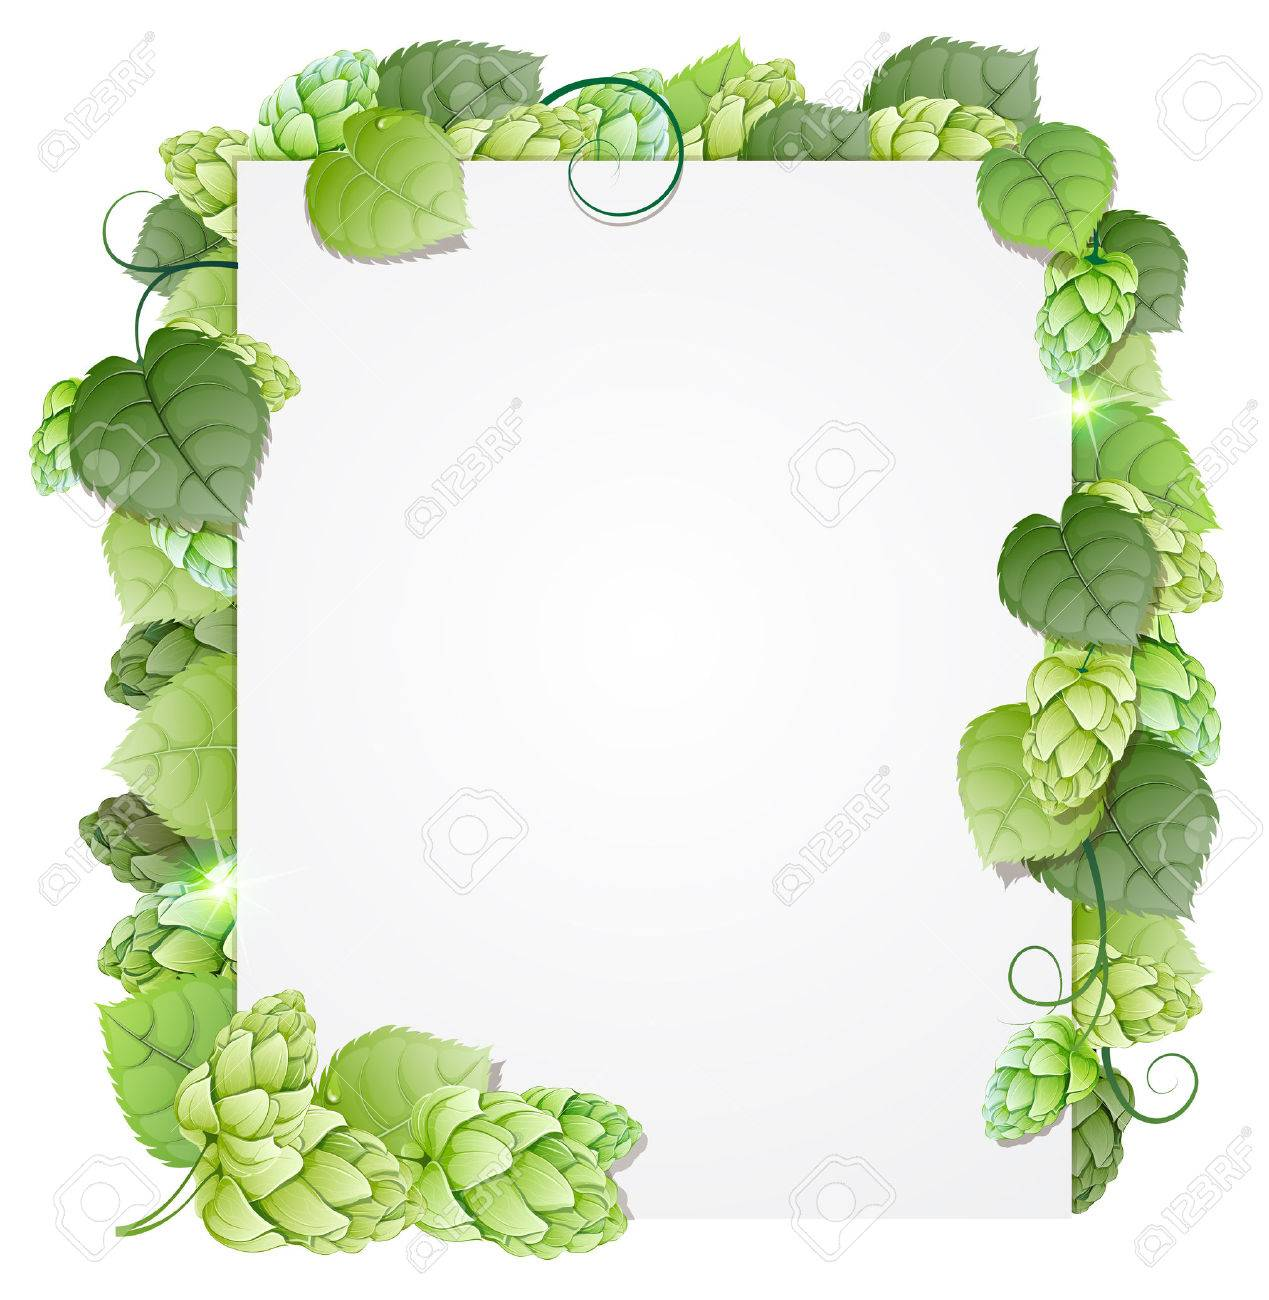 Green hops branch on white background. Abstract floral frame - 32453451